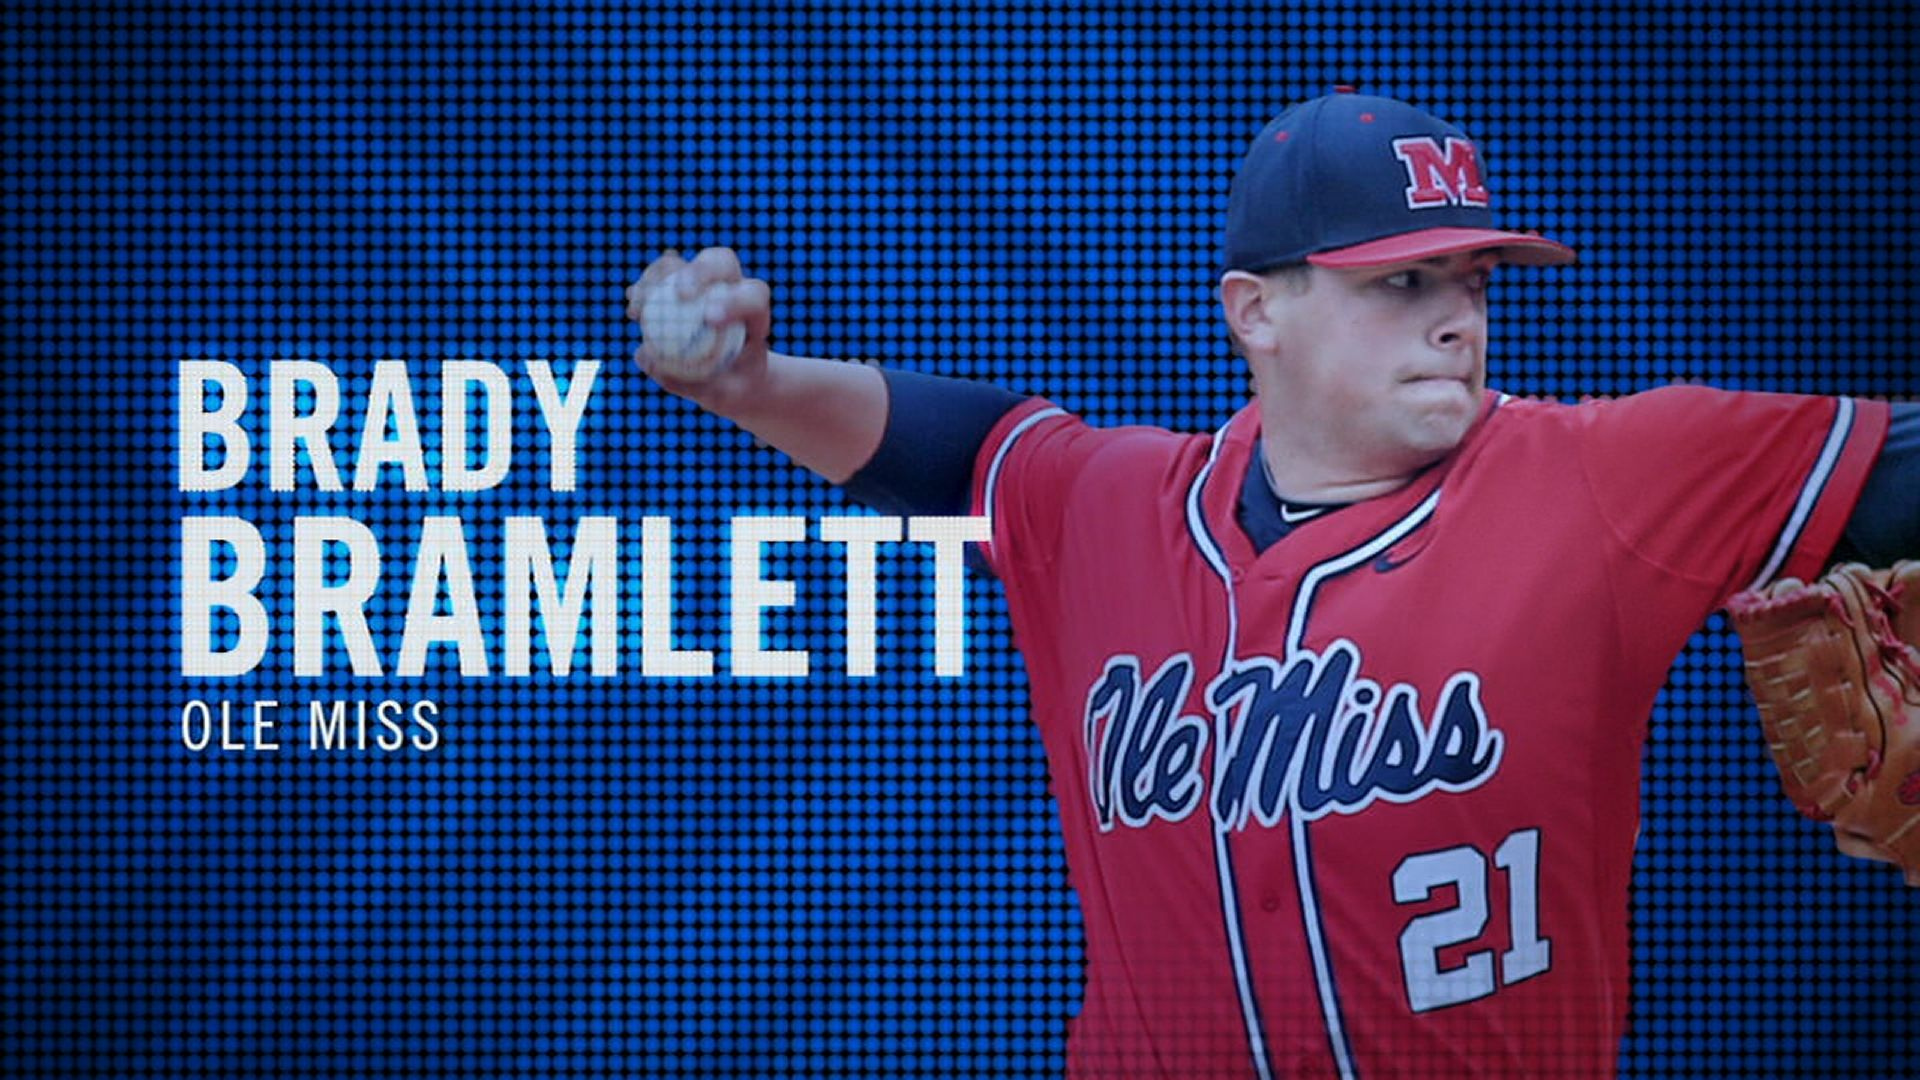 I am the SEC: Ole Miss' Brady Bramlett